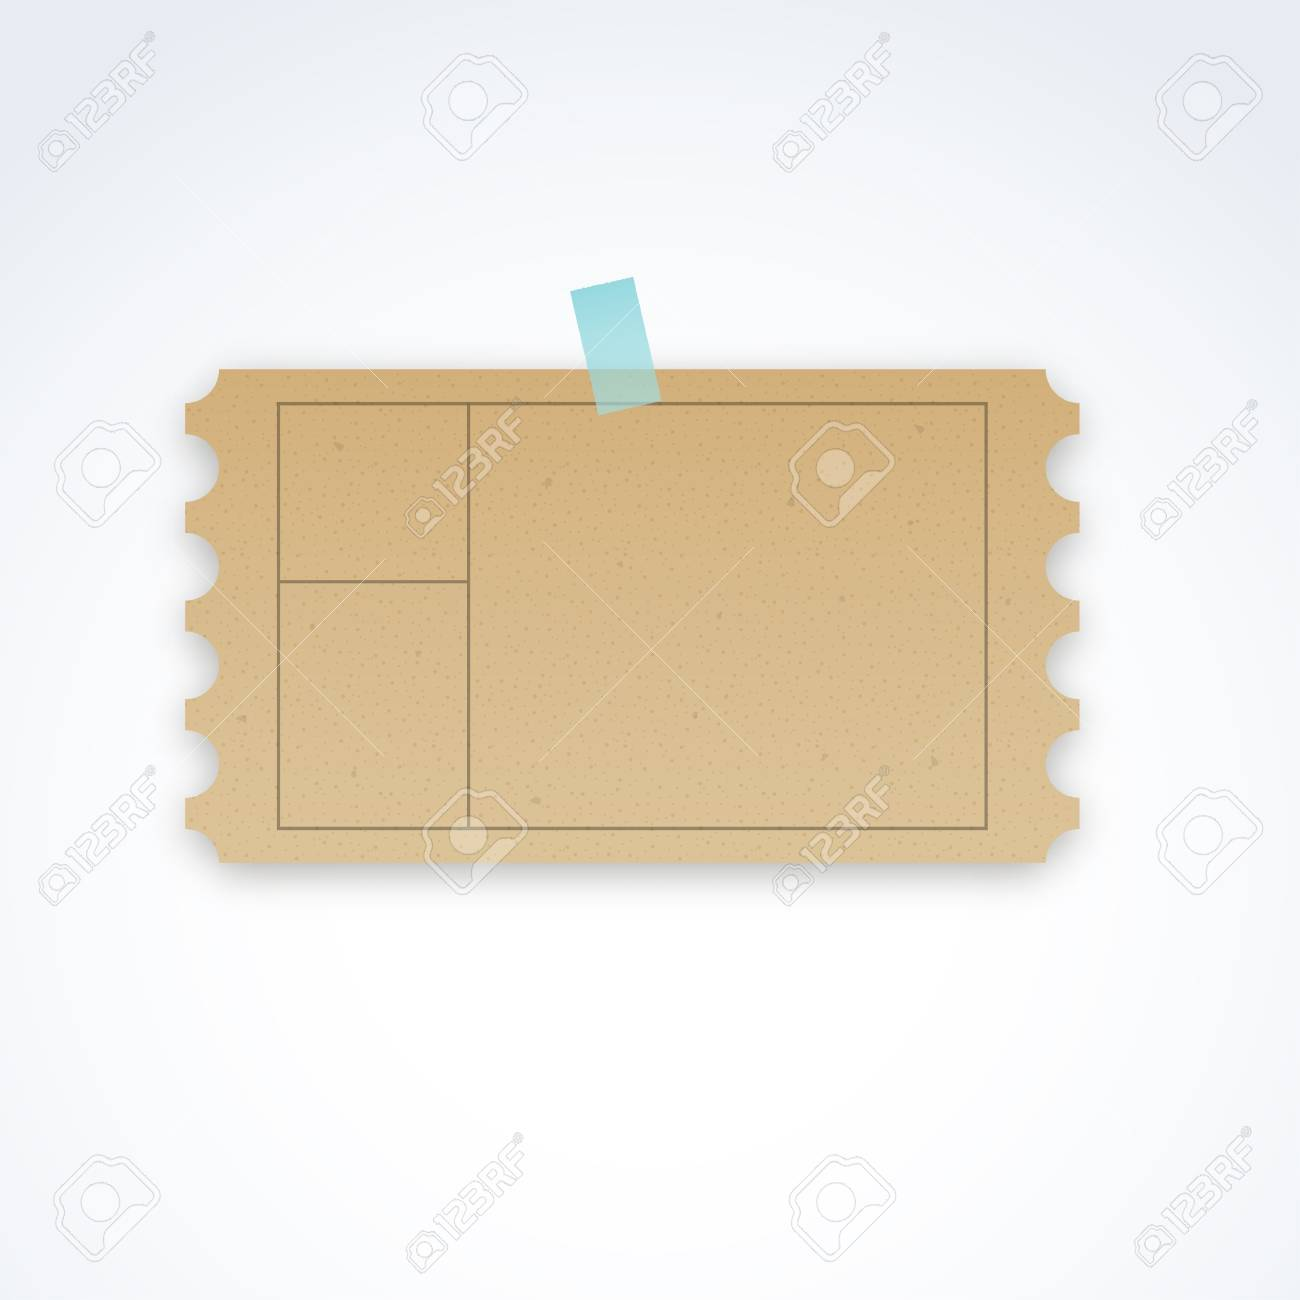 vector blank ticket template with cardboard texture and perforated